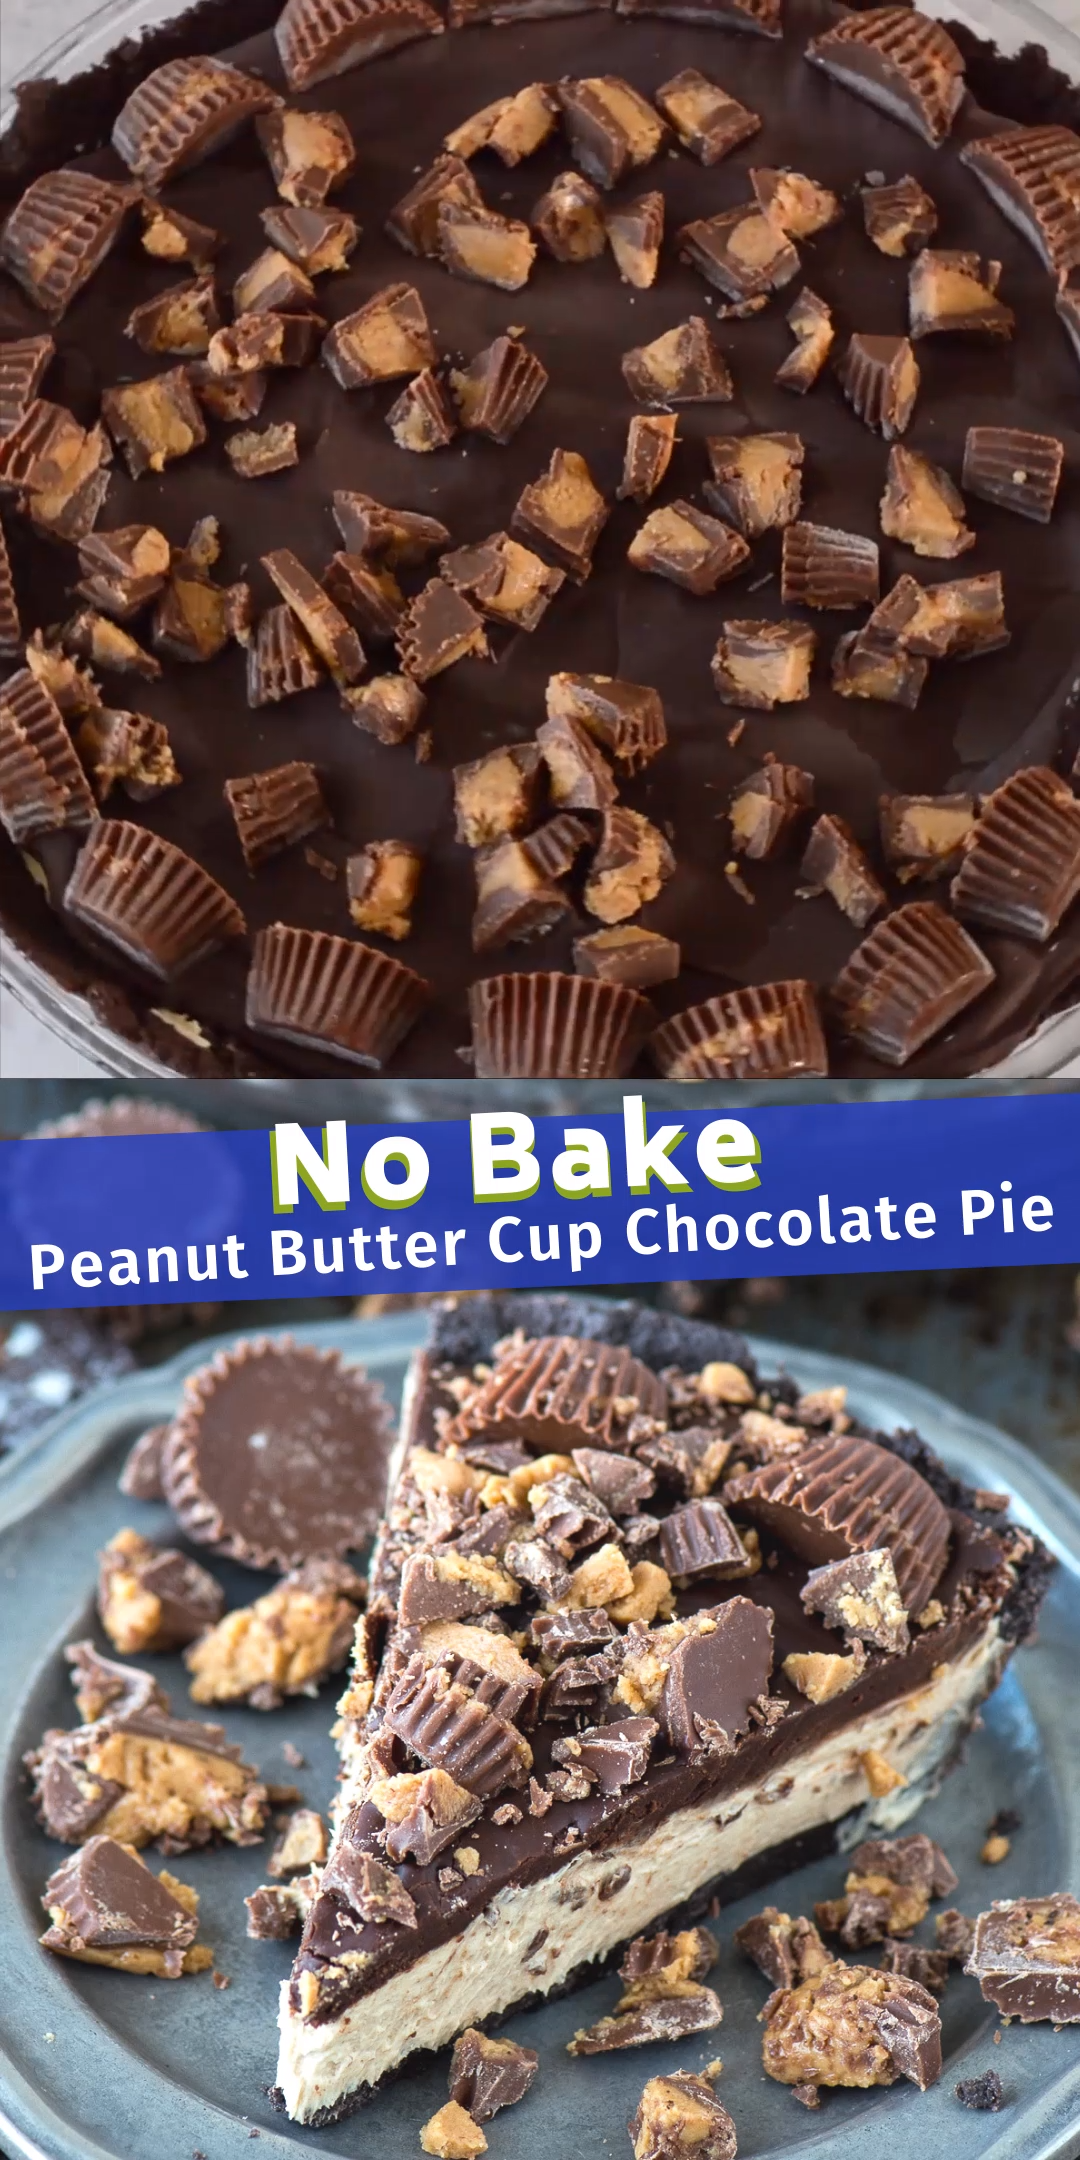 No Bake Peanut Butter Cup Chocolate Pie